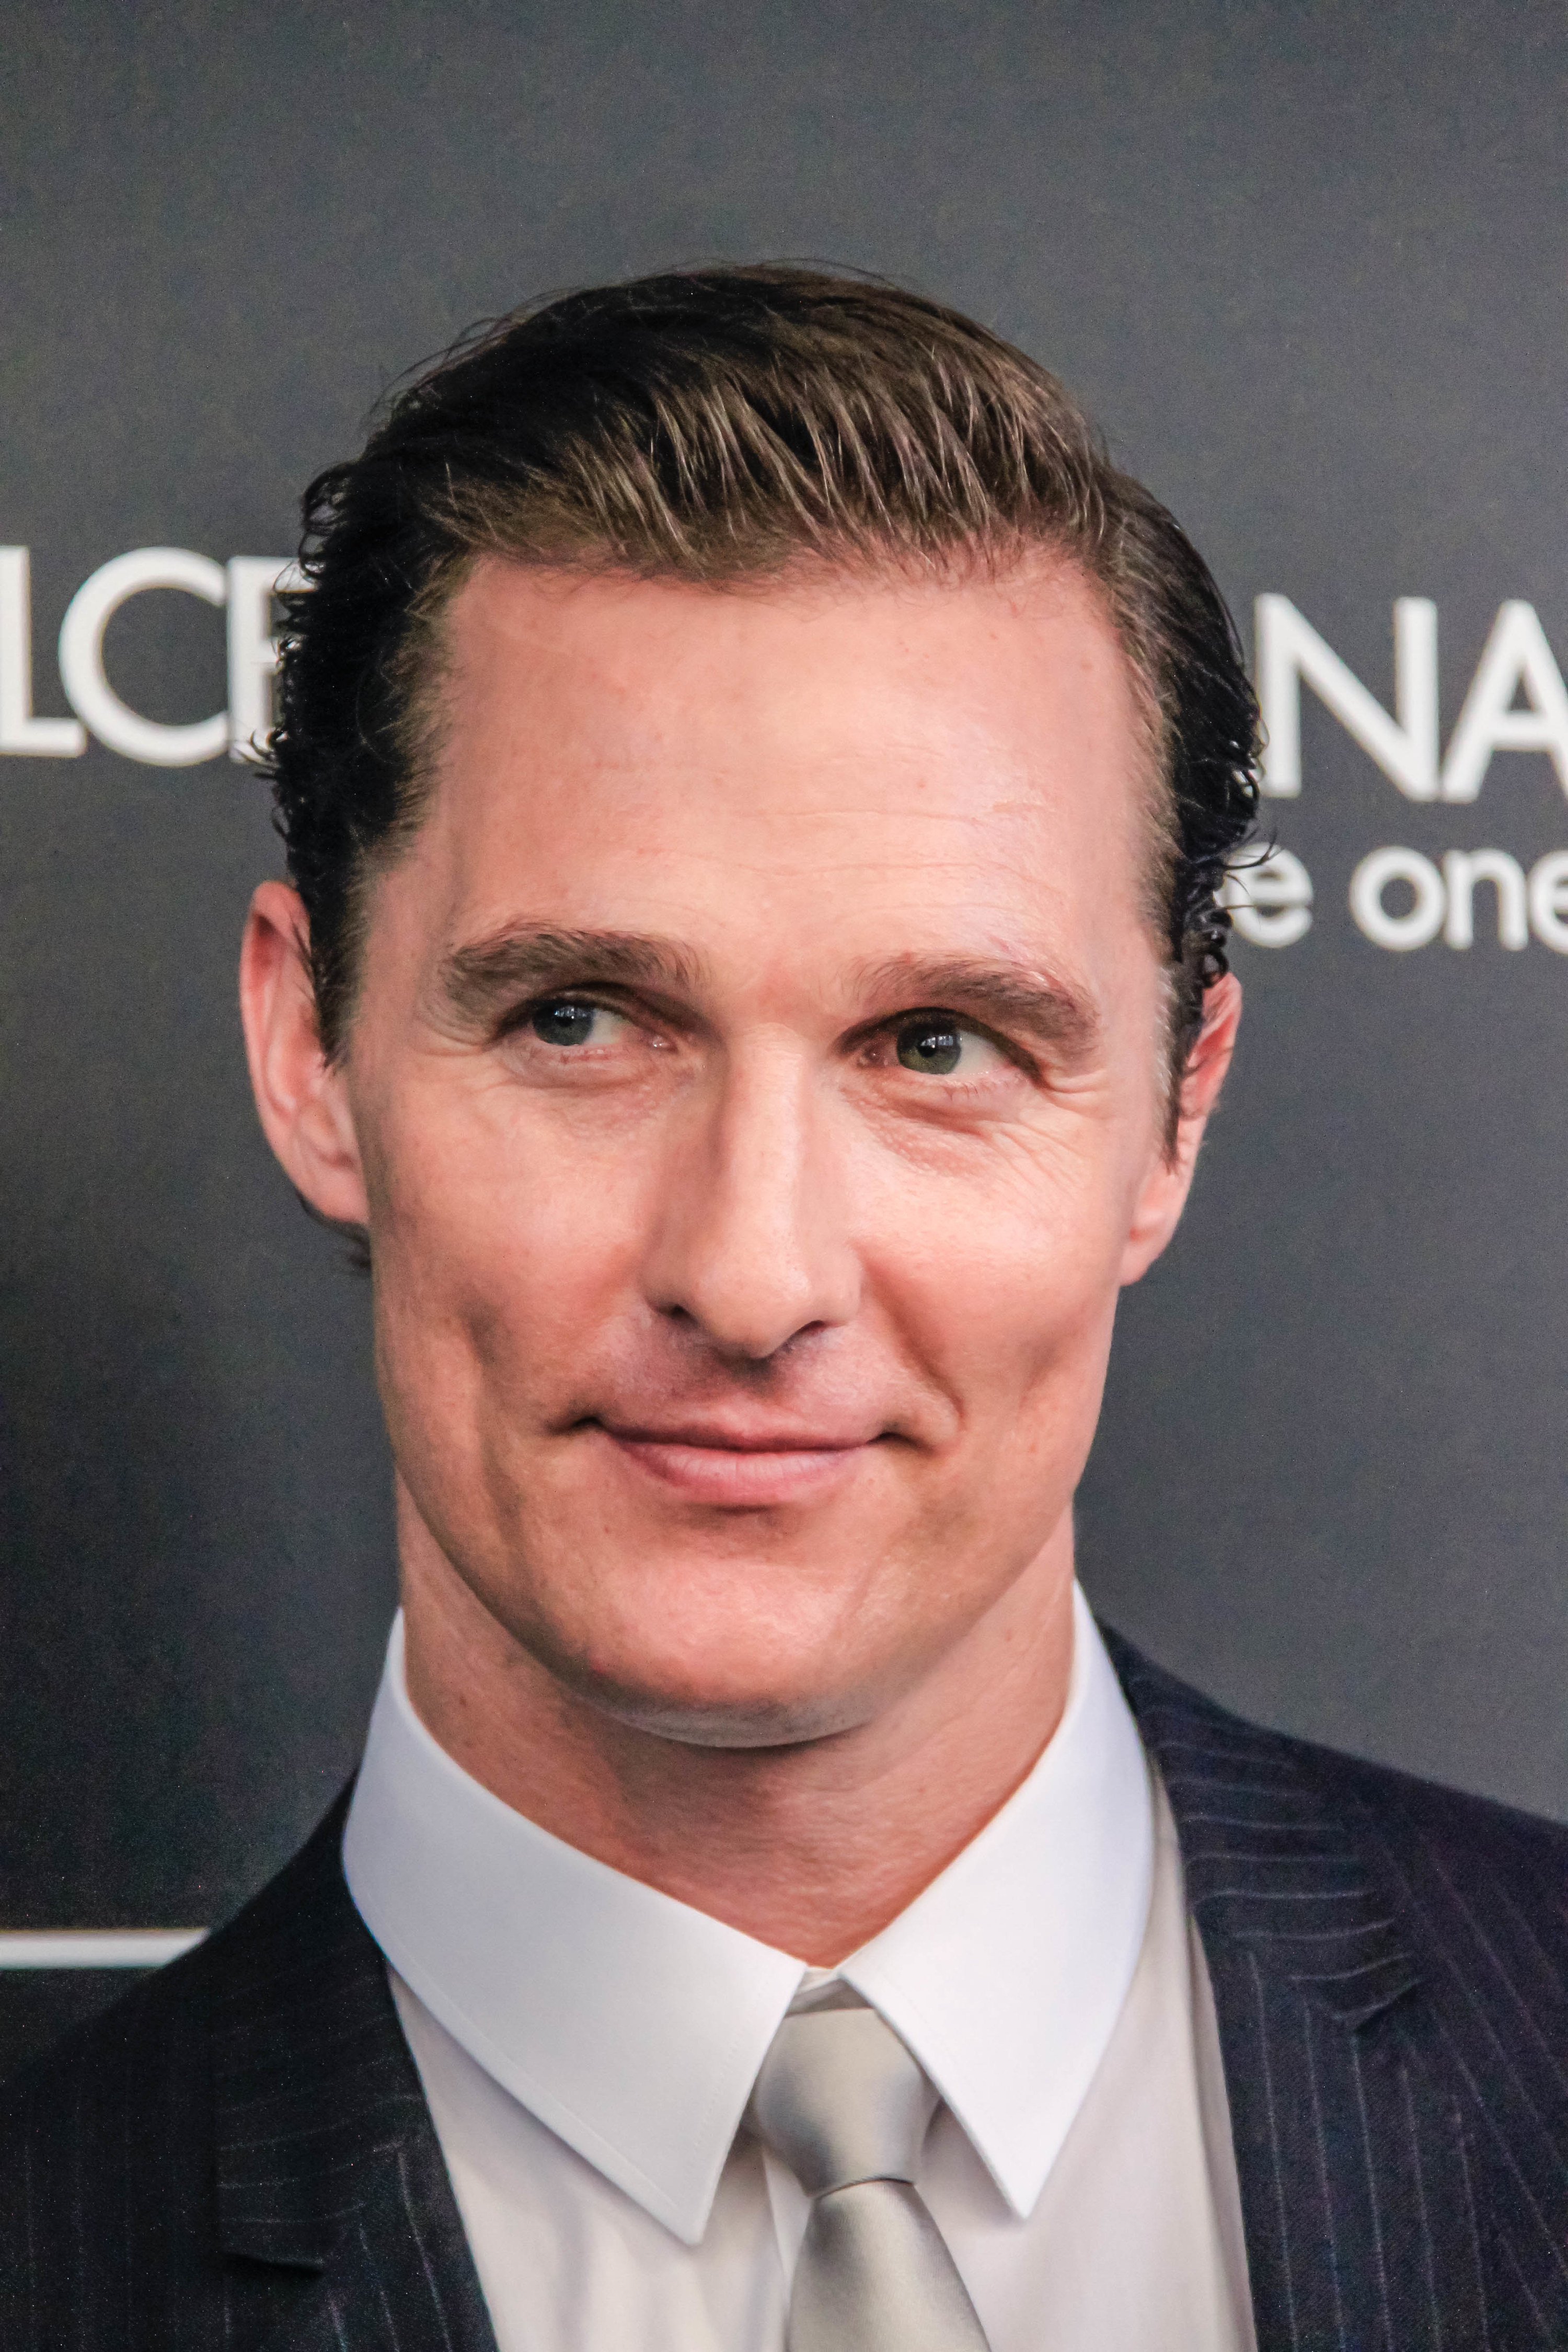 Photo of Matthew McConaughey in a suit with slicked back hair